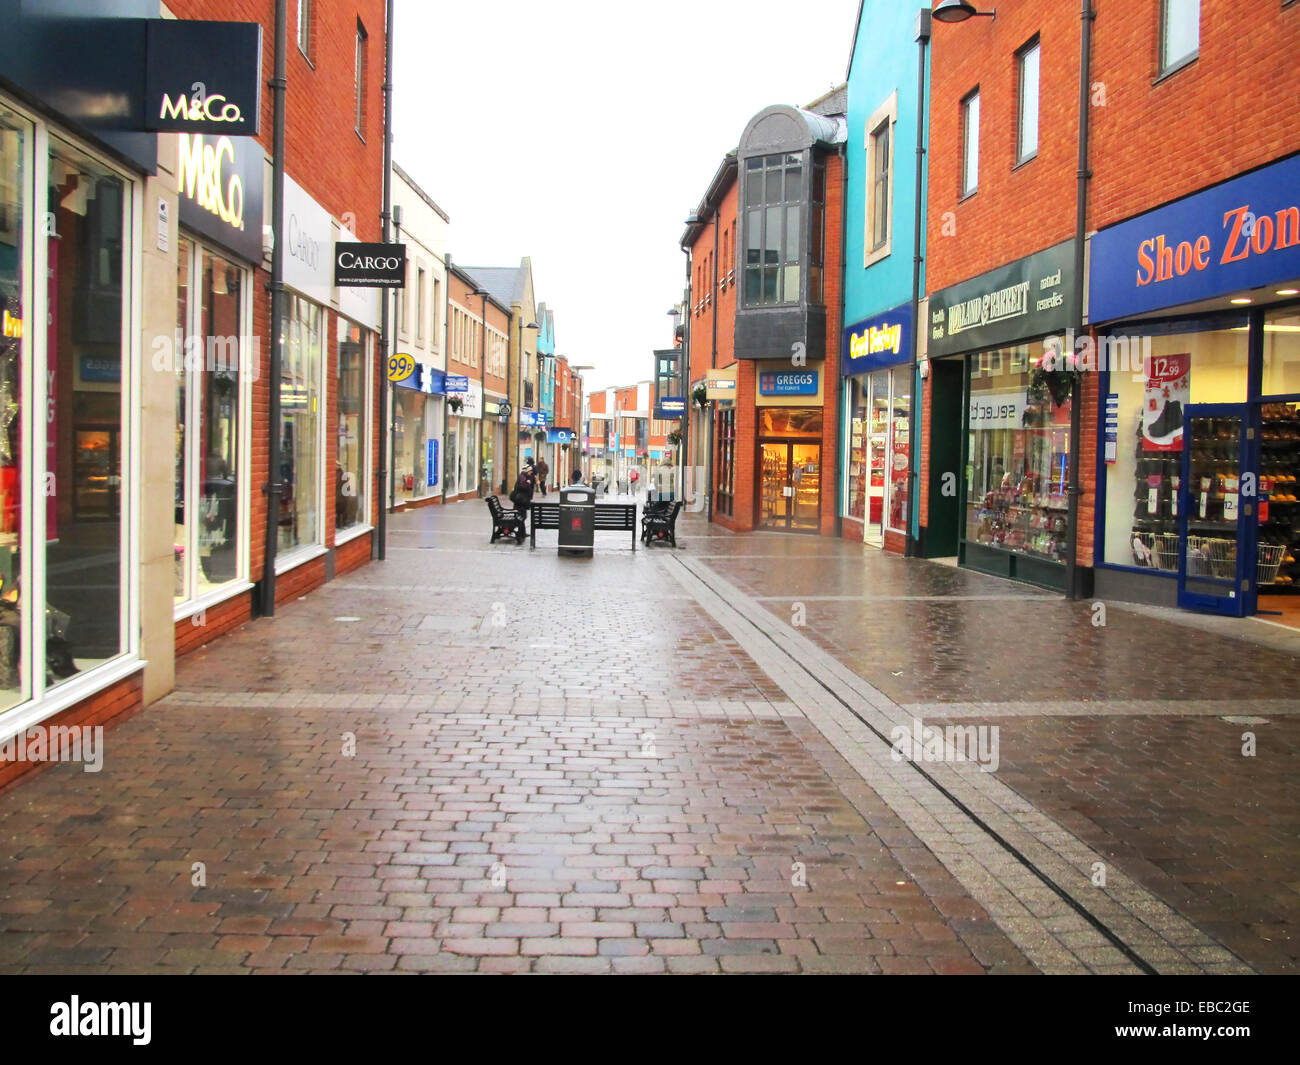 GV Orchard Centre, Didcot Date taken 25.11.2014 Taken by Neil Braggins for a story by Andrew Ffrench - Stock Image